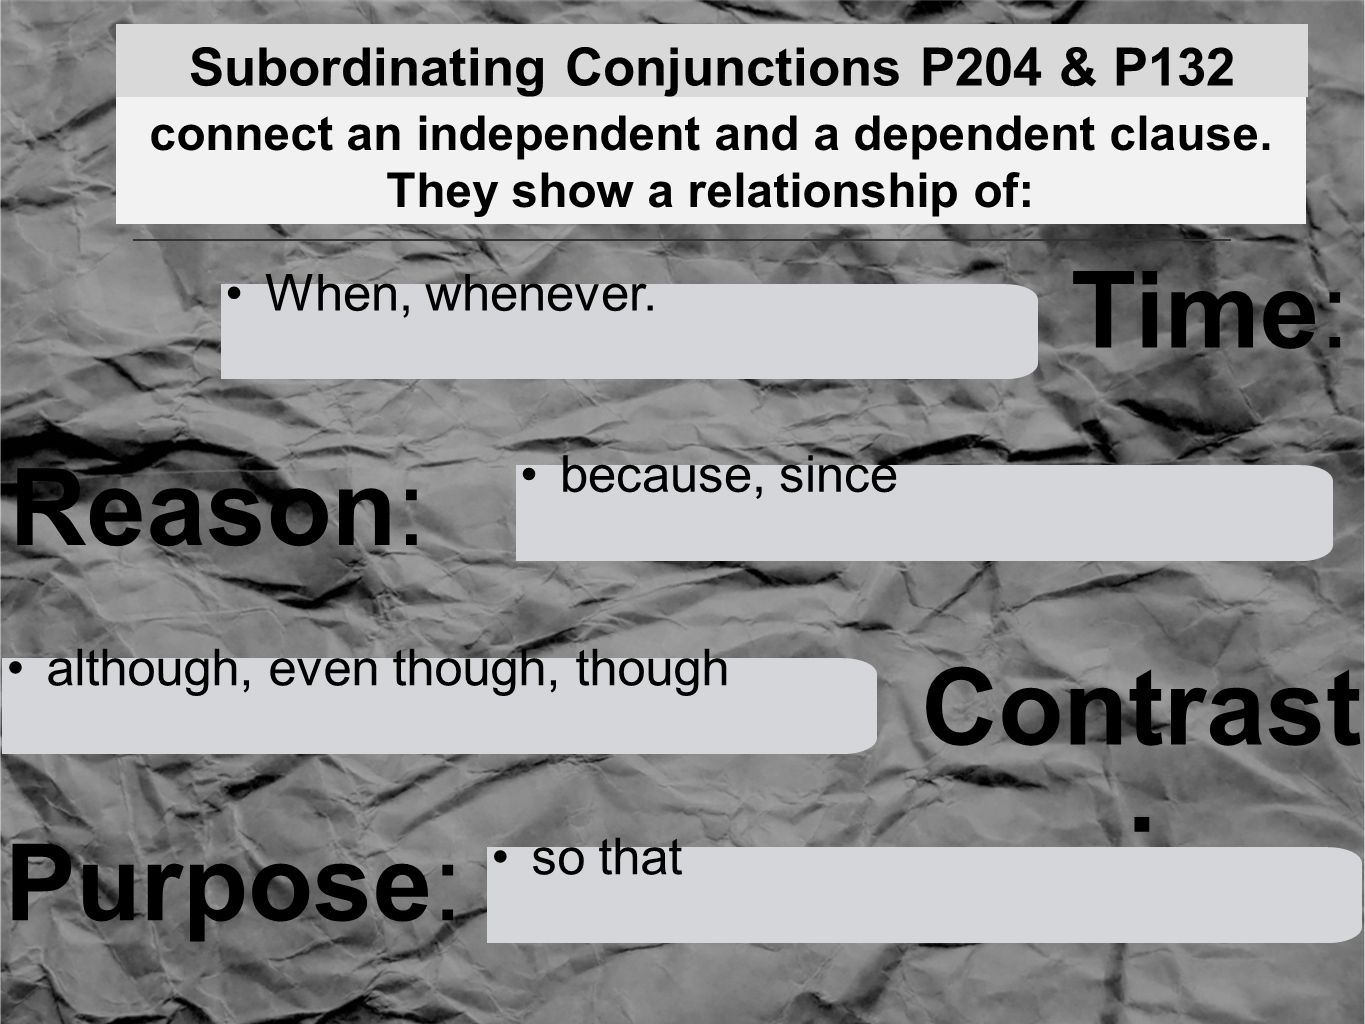 Subordinating Conjunctions P204 & P132 Time: When, whenever.